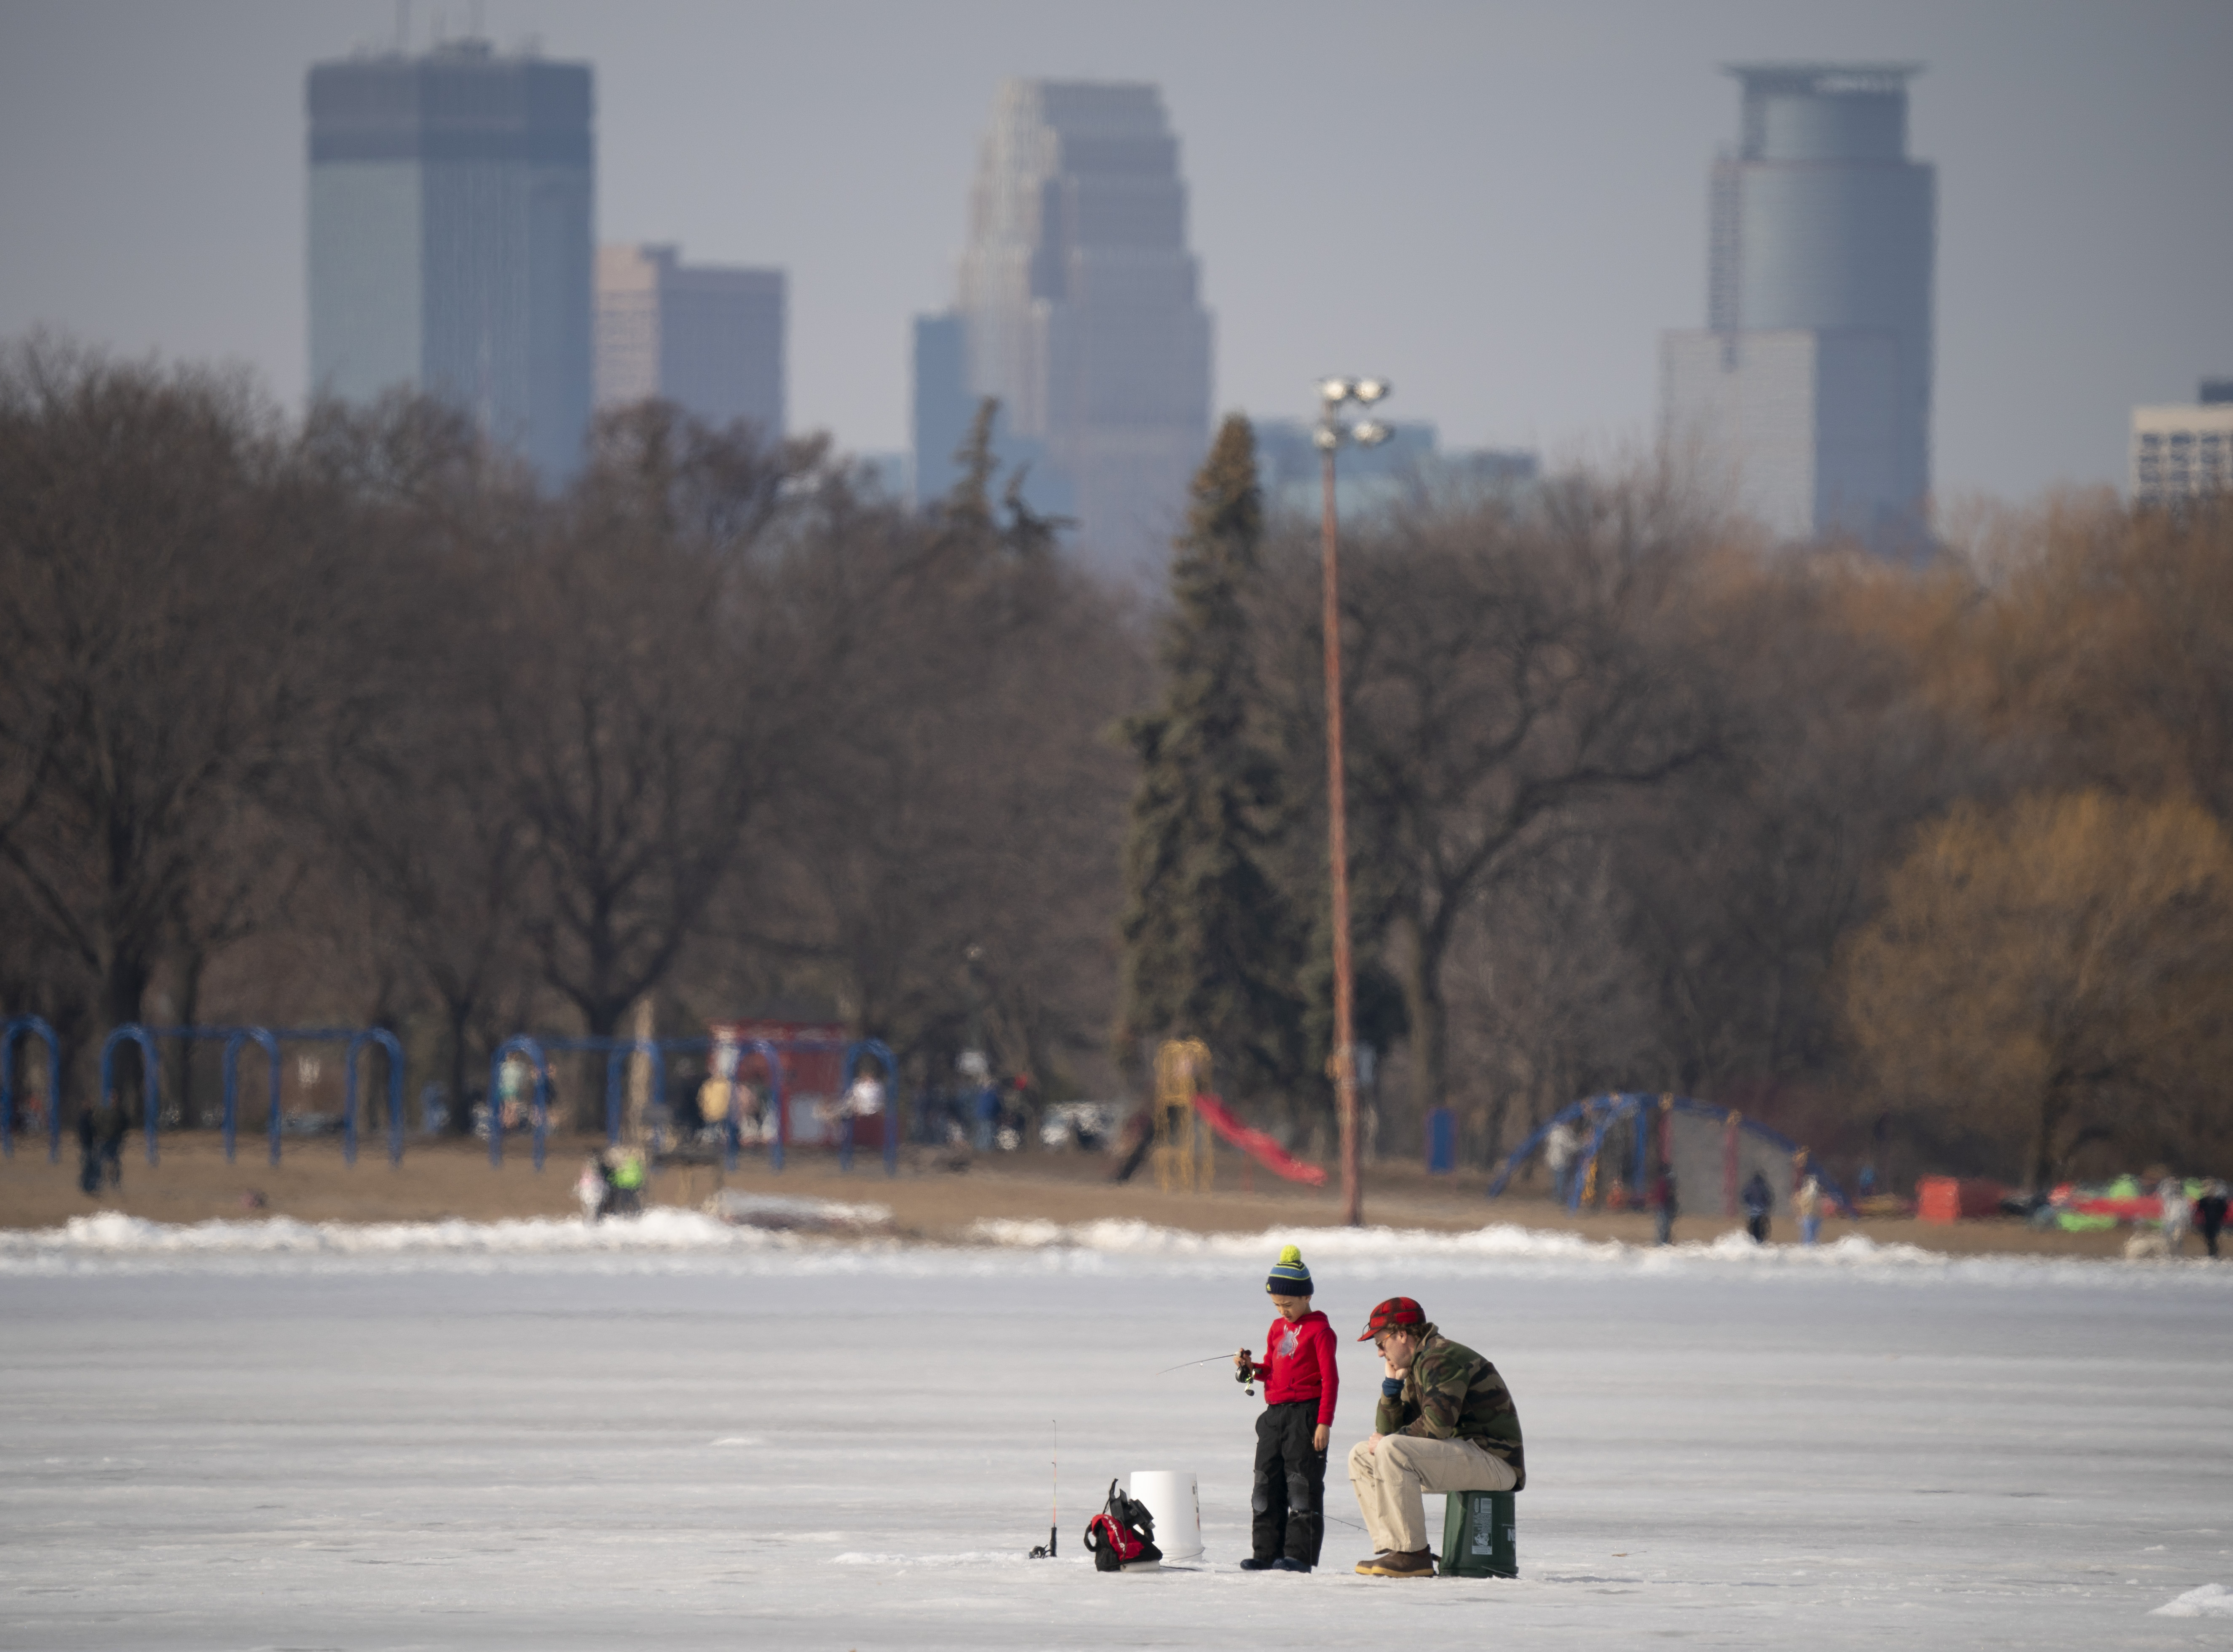 Andrew Johnson and his son, James, 6, fished while they still could at Lake Nokomis on Sunday afternoon as temperatures reached the high 50s.